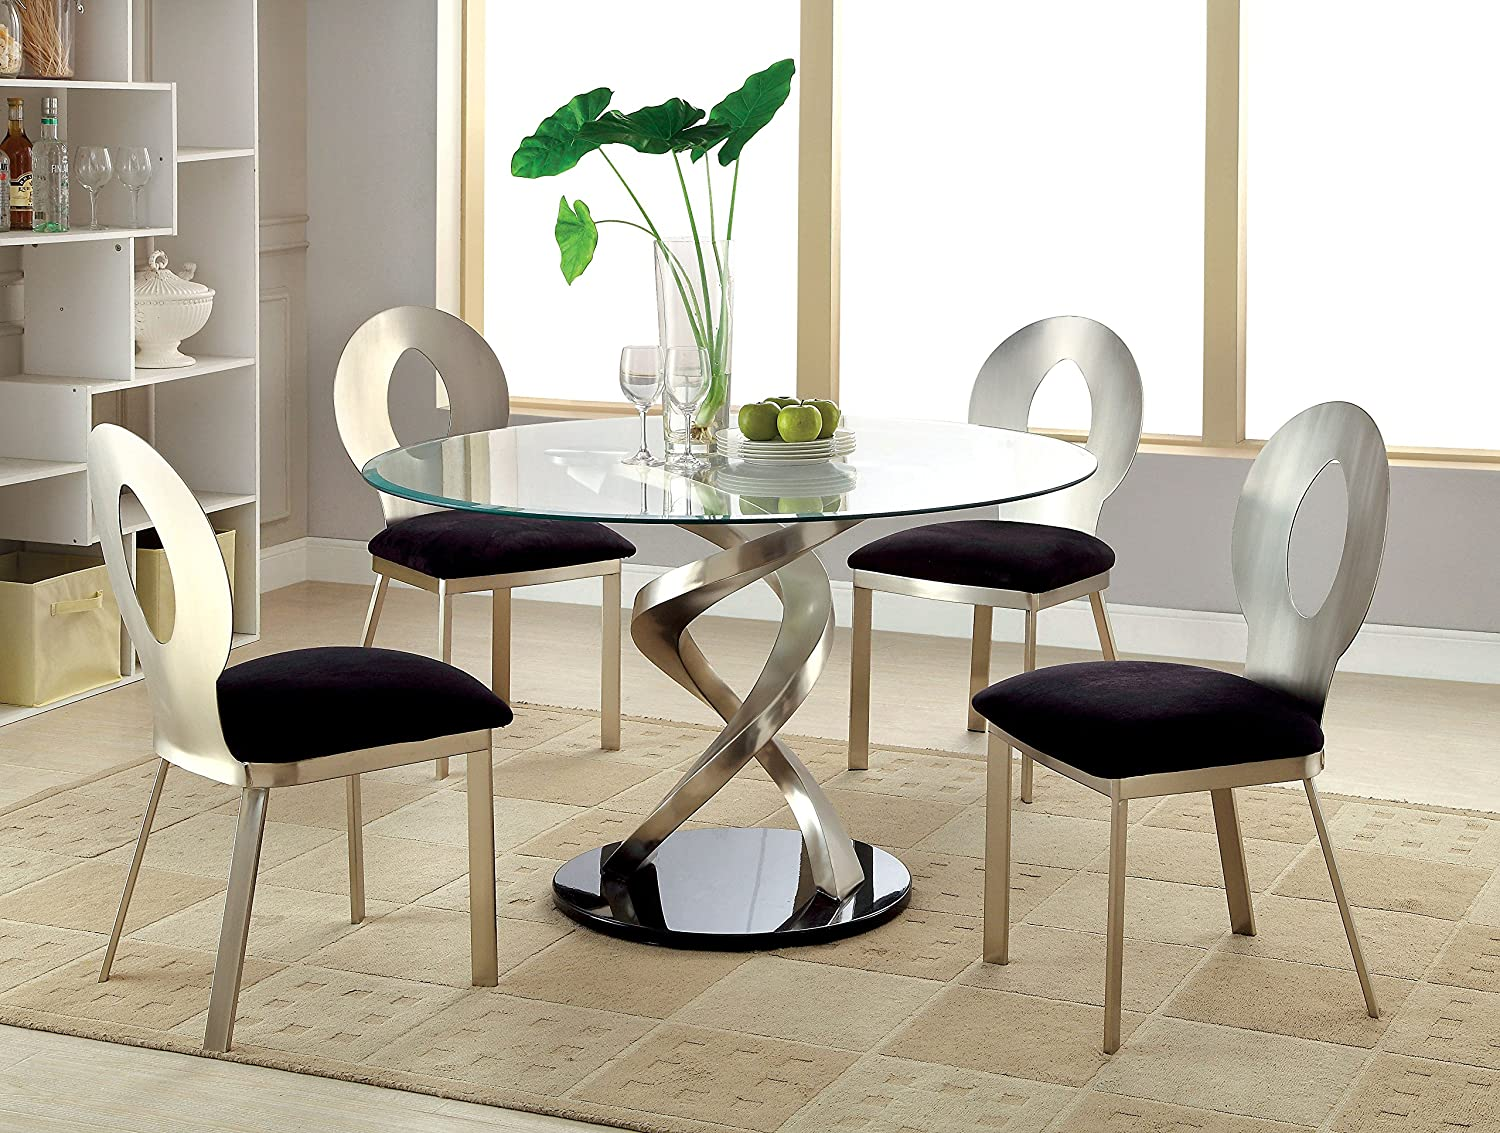 Amazon Com Furniture Of America Catarina I 5 Piece Round Glass Top Dining Set Table Chair Sets